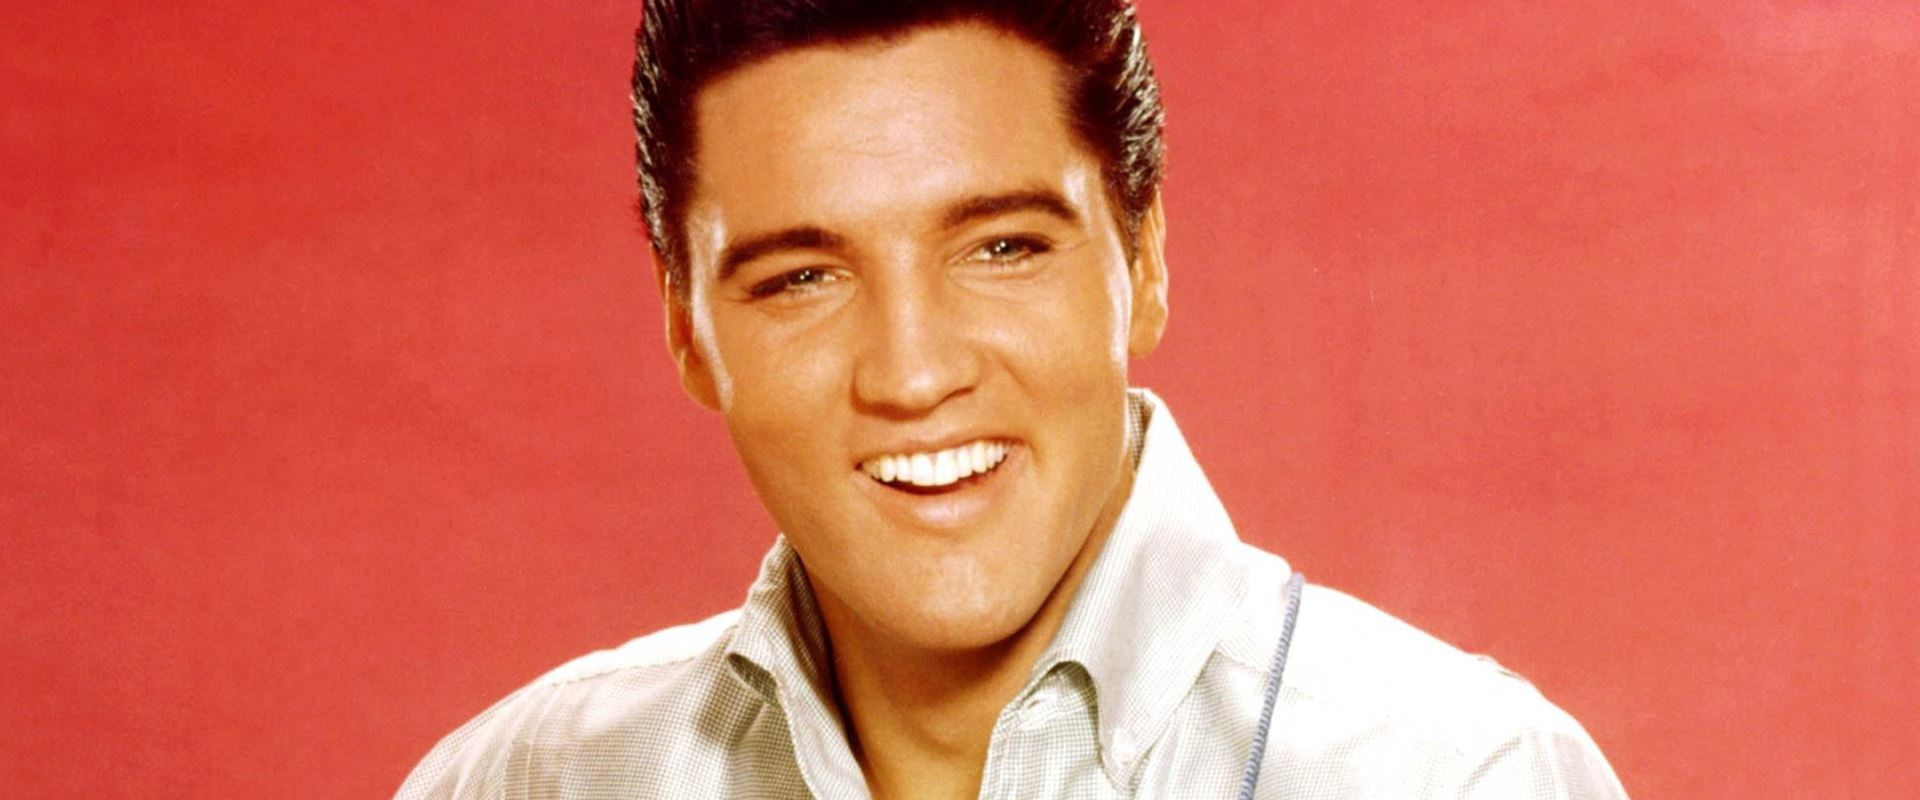 "#RockThisDay – 3 Απριλίου: O Elvis Presley ηχογραφεί το all time classic ""It's Now or Never"""